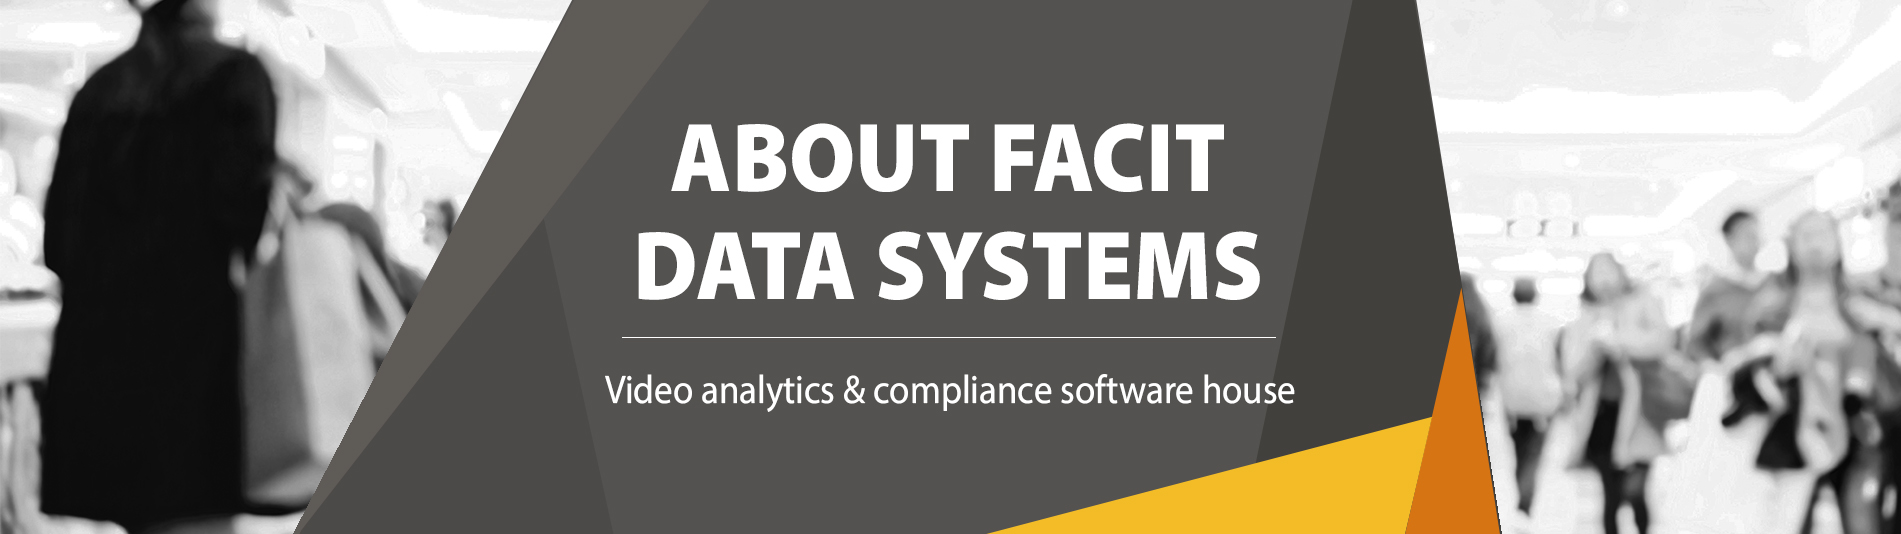 Video analytics & compliance software house